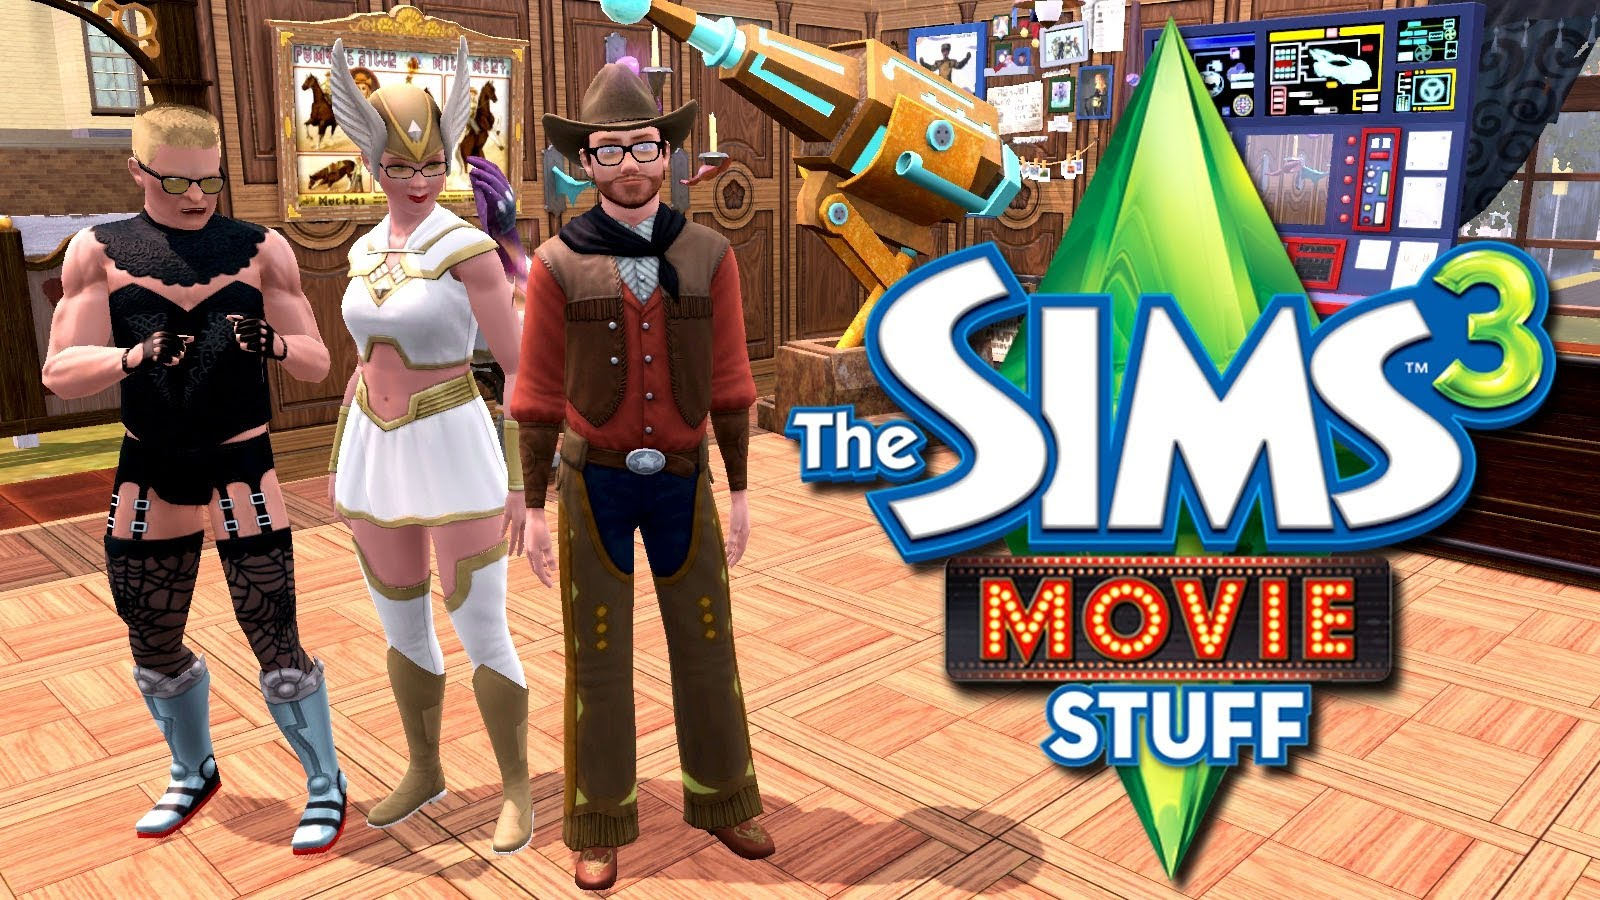 The Sims 3: Movie Stuff | Origin | Opium Pulses - Cheap